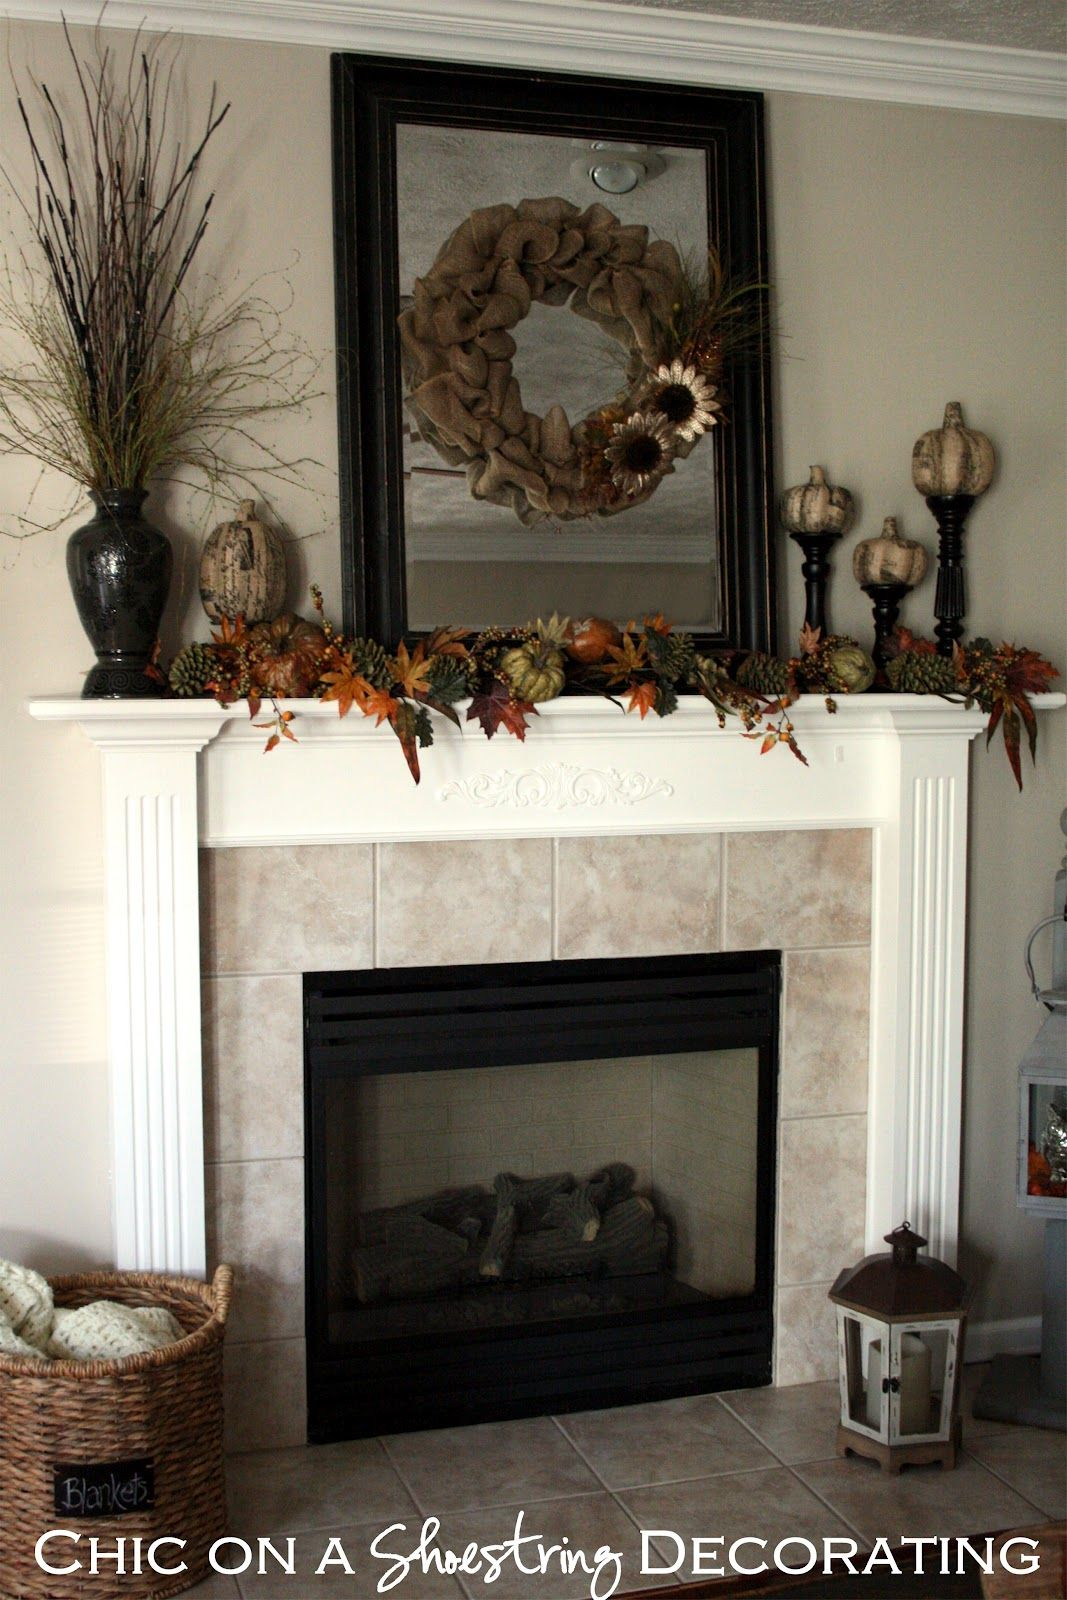 More ideas for the fireplace mantel Decor